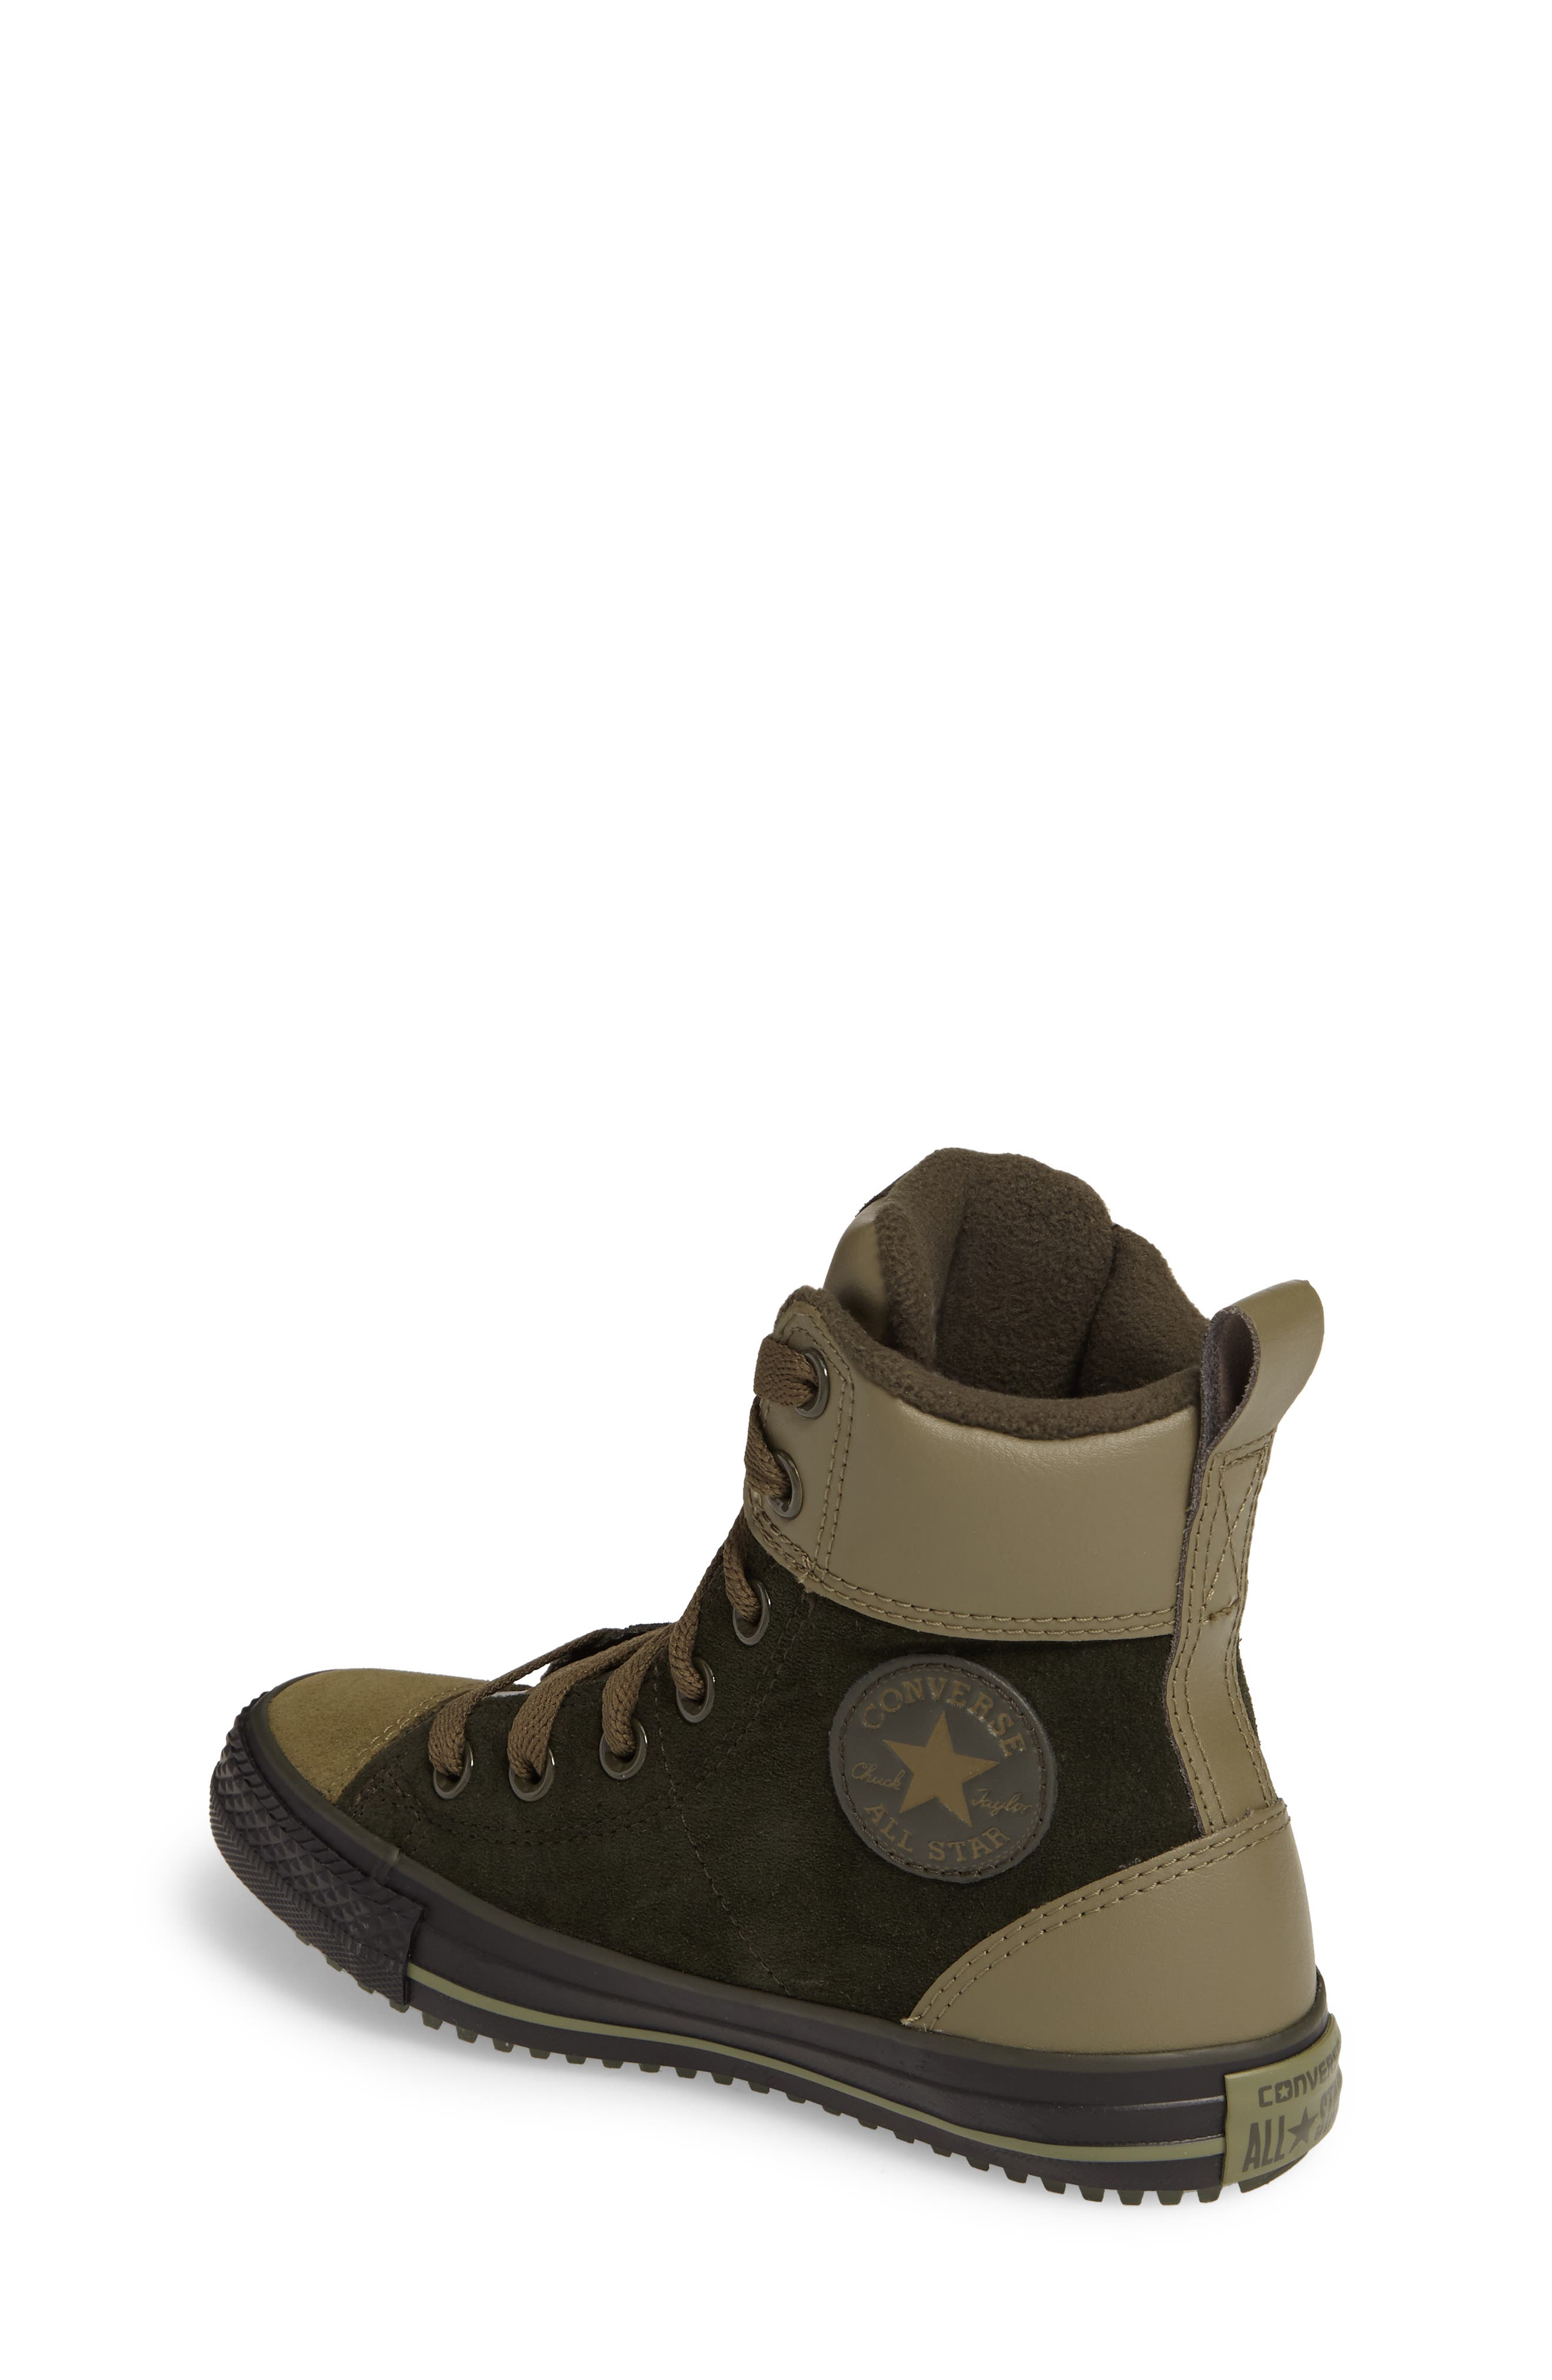 Chuck Taylor<sup>®</sup> All Star<sup>®</sup> Asphalt Sneaker Boot,                             Alternate thumbnail 4, color,